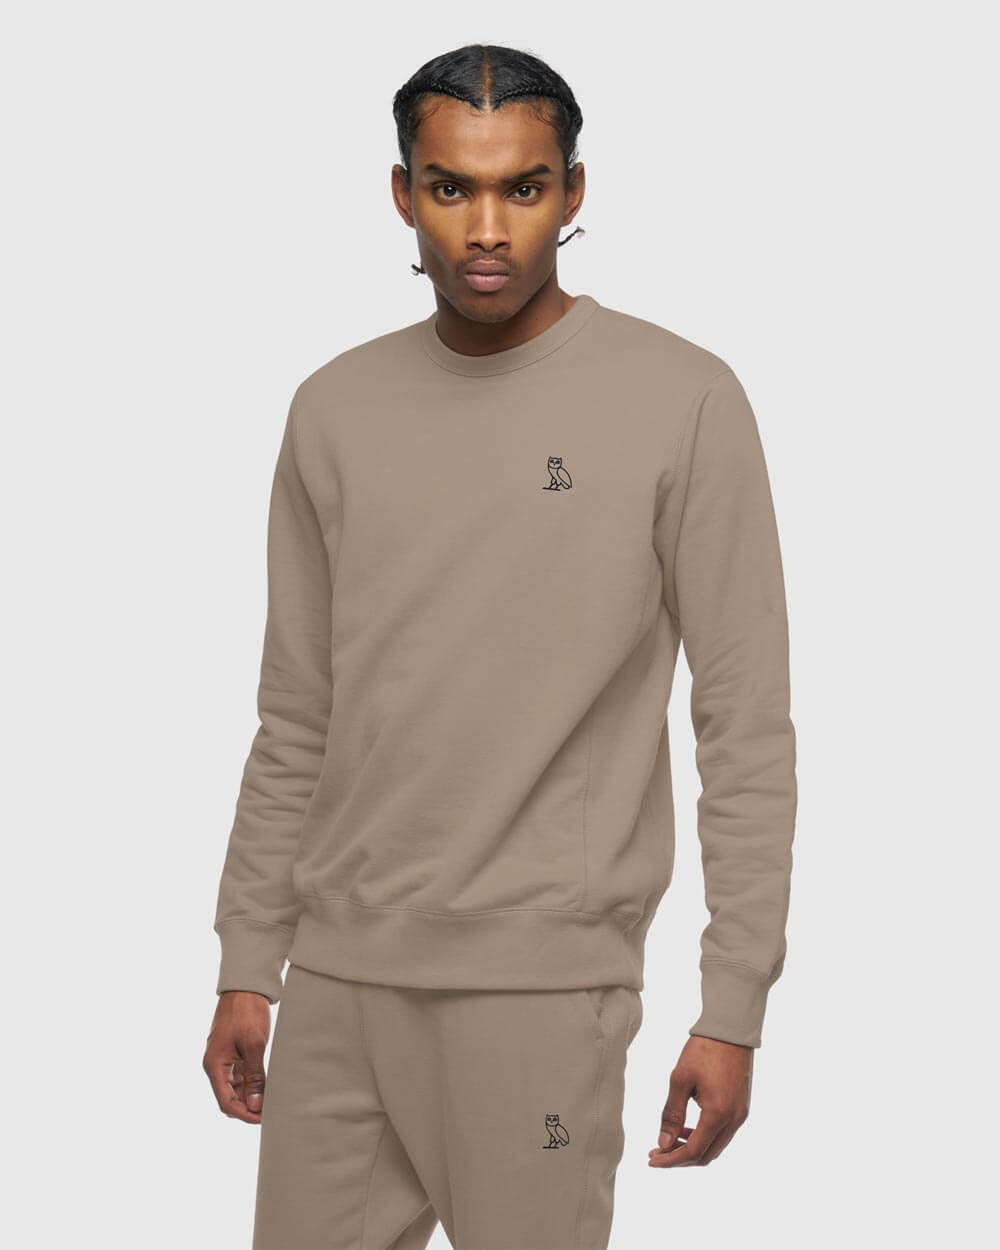 MID-WEIGHT FRENCH TERRY CREW -  WARM GREY